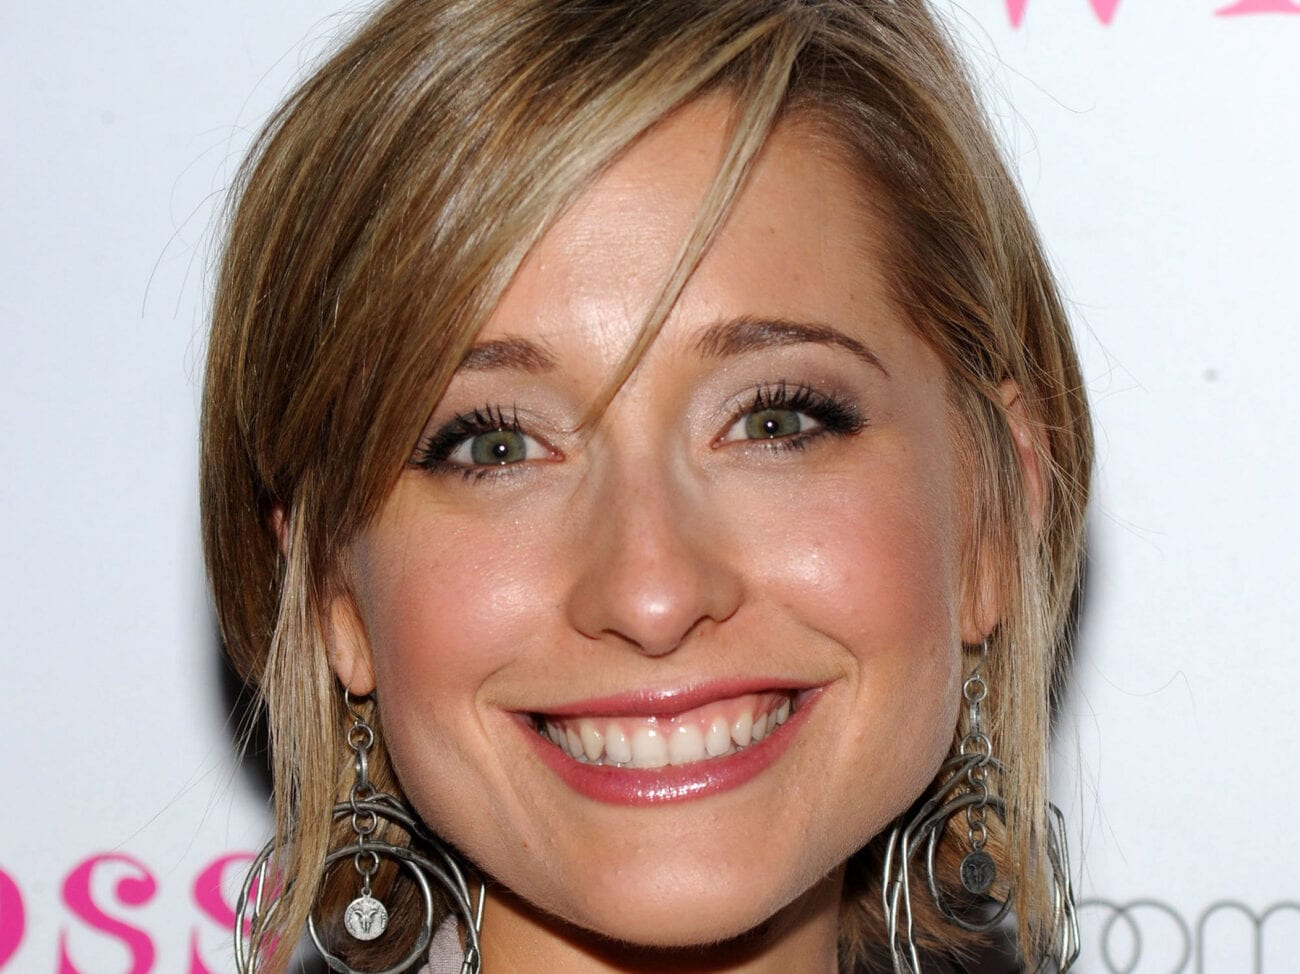 'Smallville' star Allison Mack awaits sentencing for her involvement in the NXIVM cult –her 2019 guilty plea might help her avoid jail time.